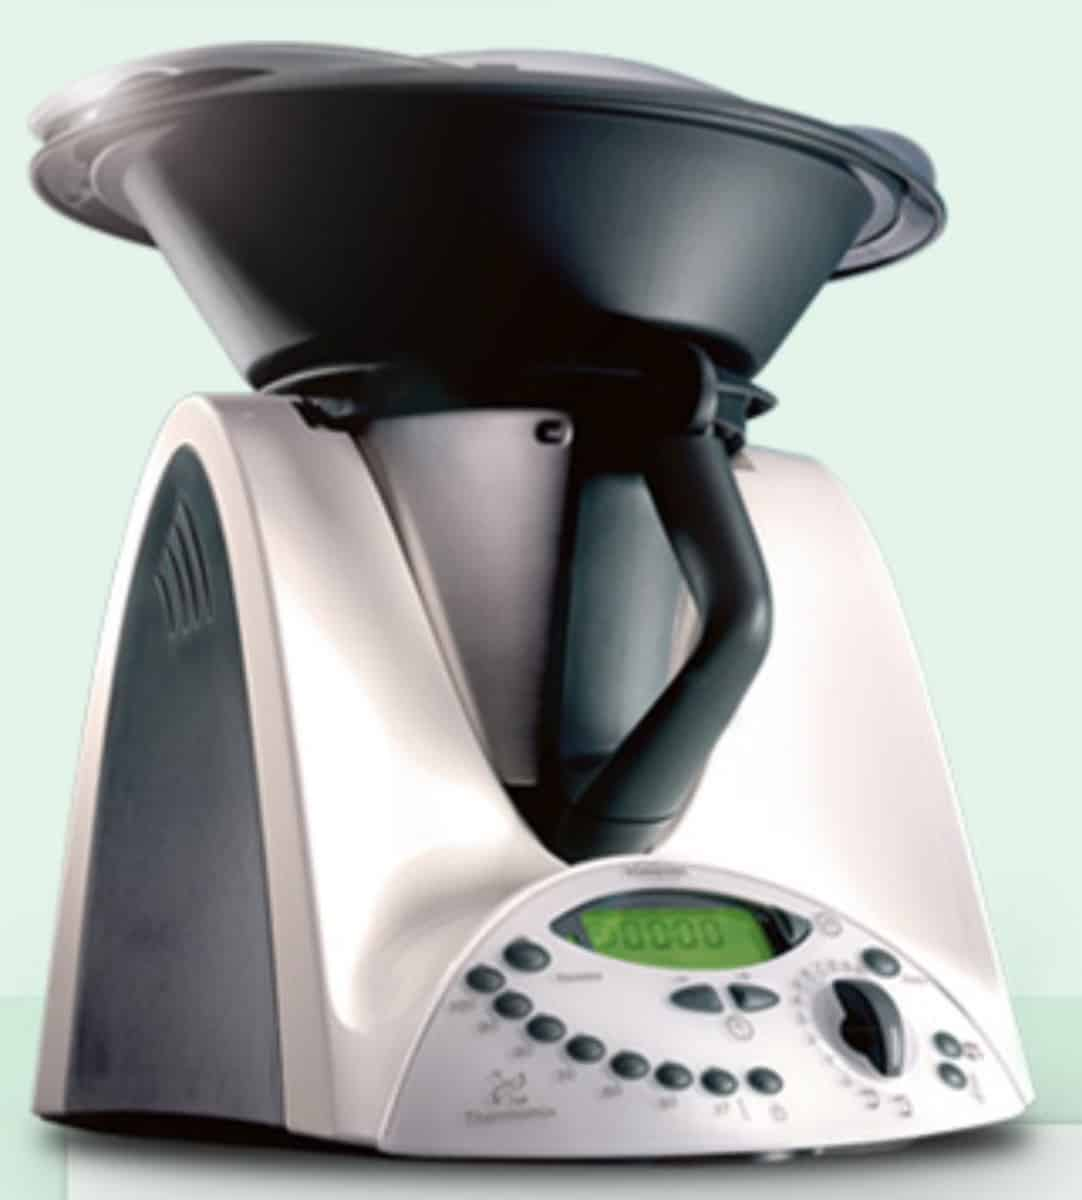 An image of a Thermomix TM31 model.